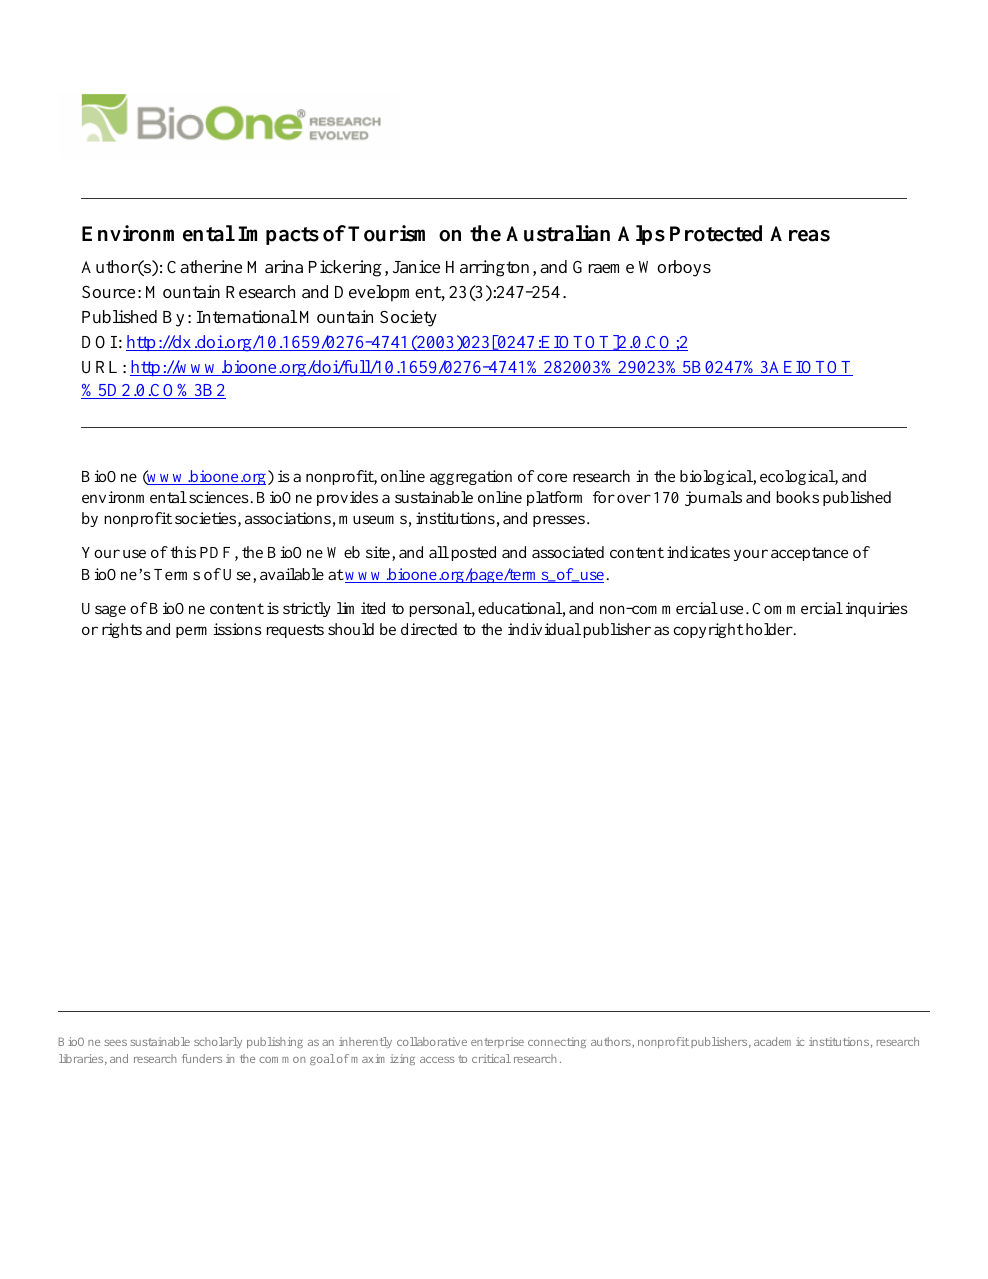 Environmental Impacts of Tourism on the Australian Alps